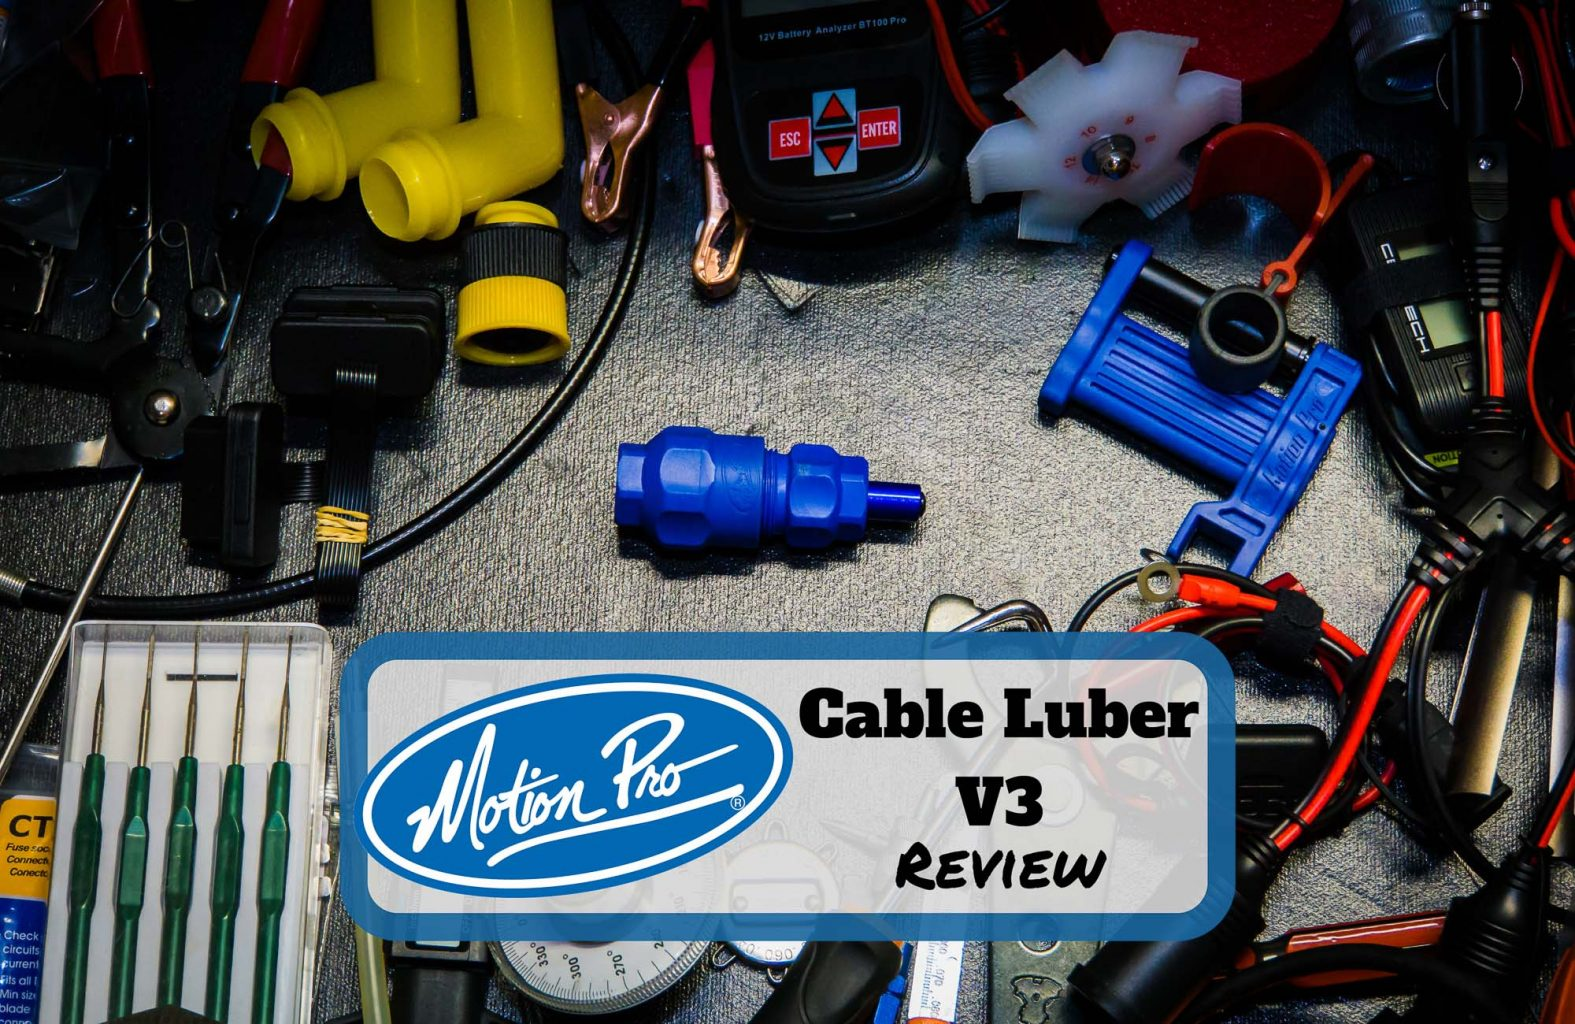 Motion Pro Cable Luber V3 Review - Title Thumbnail